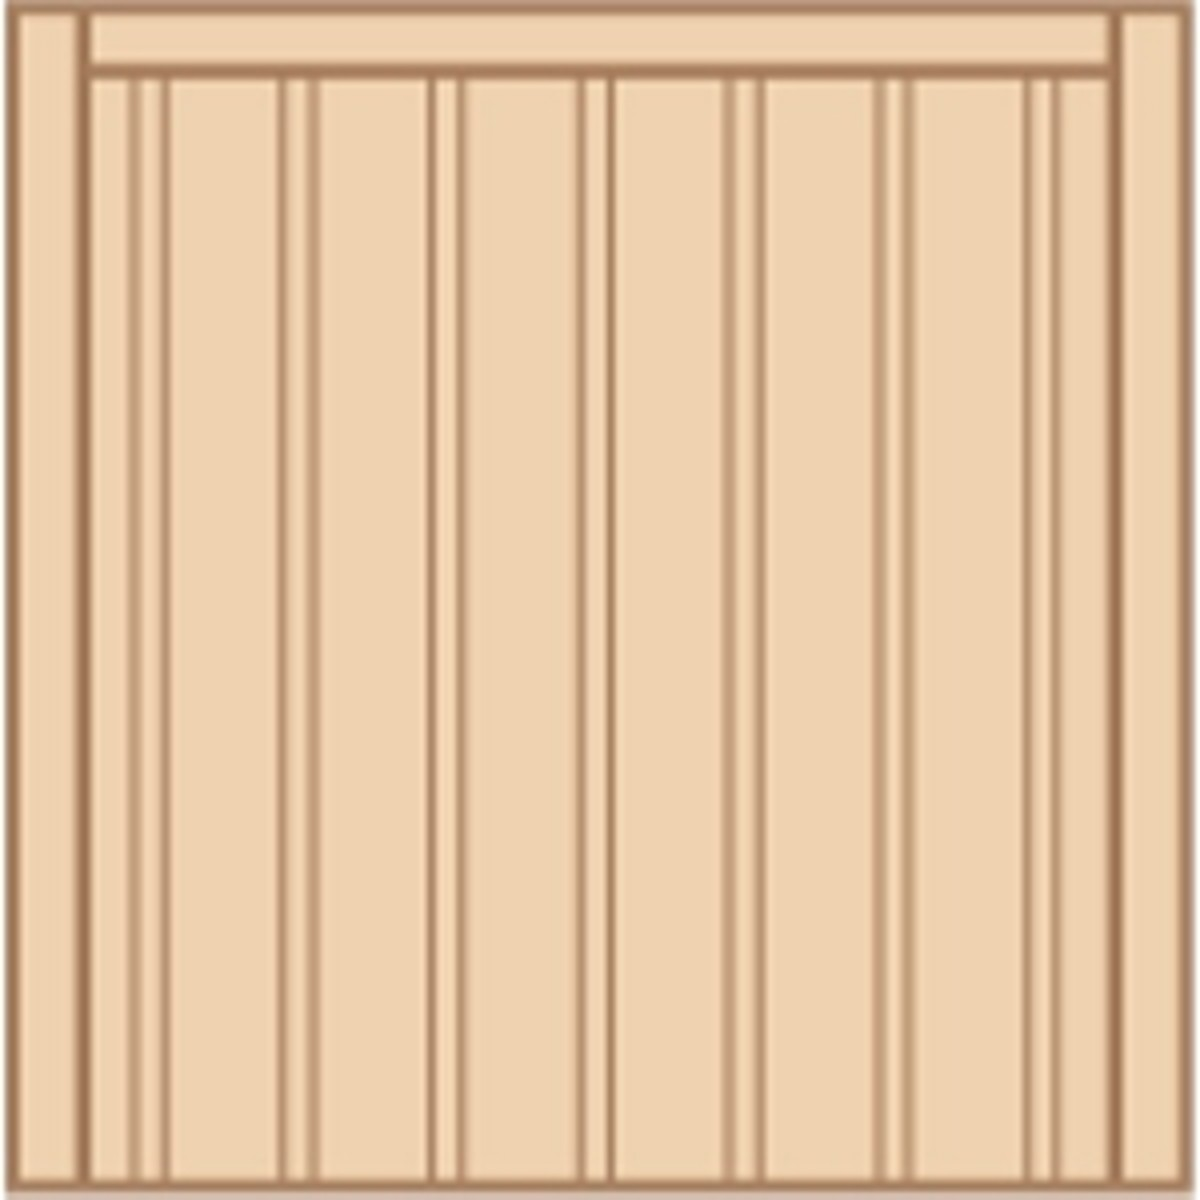 Wooden gates - Single wooden gates - Dalby gate